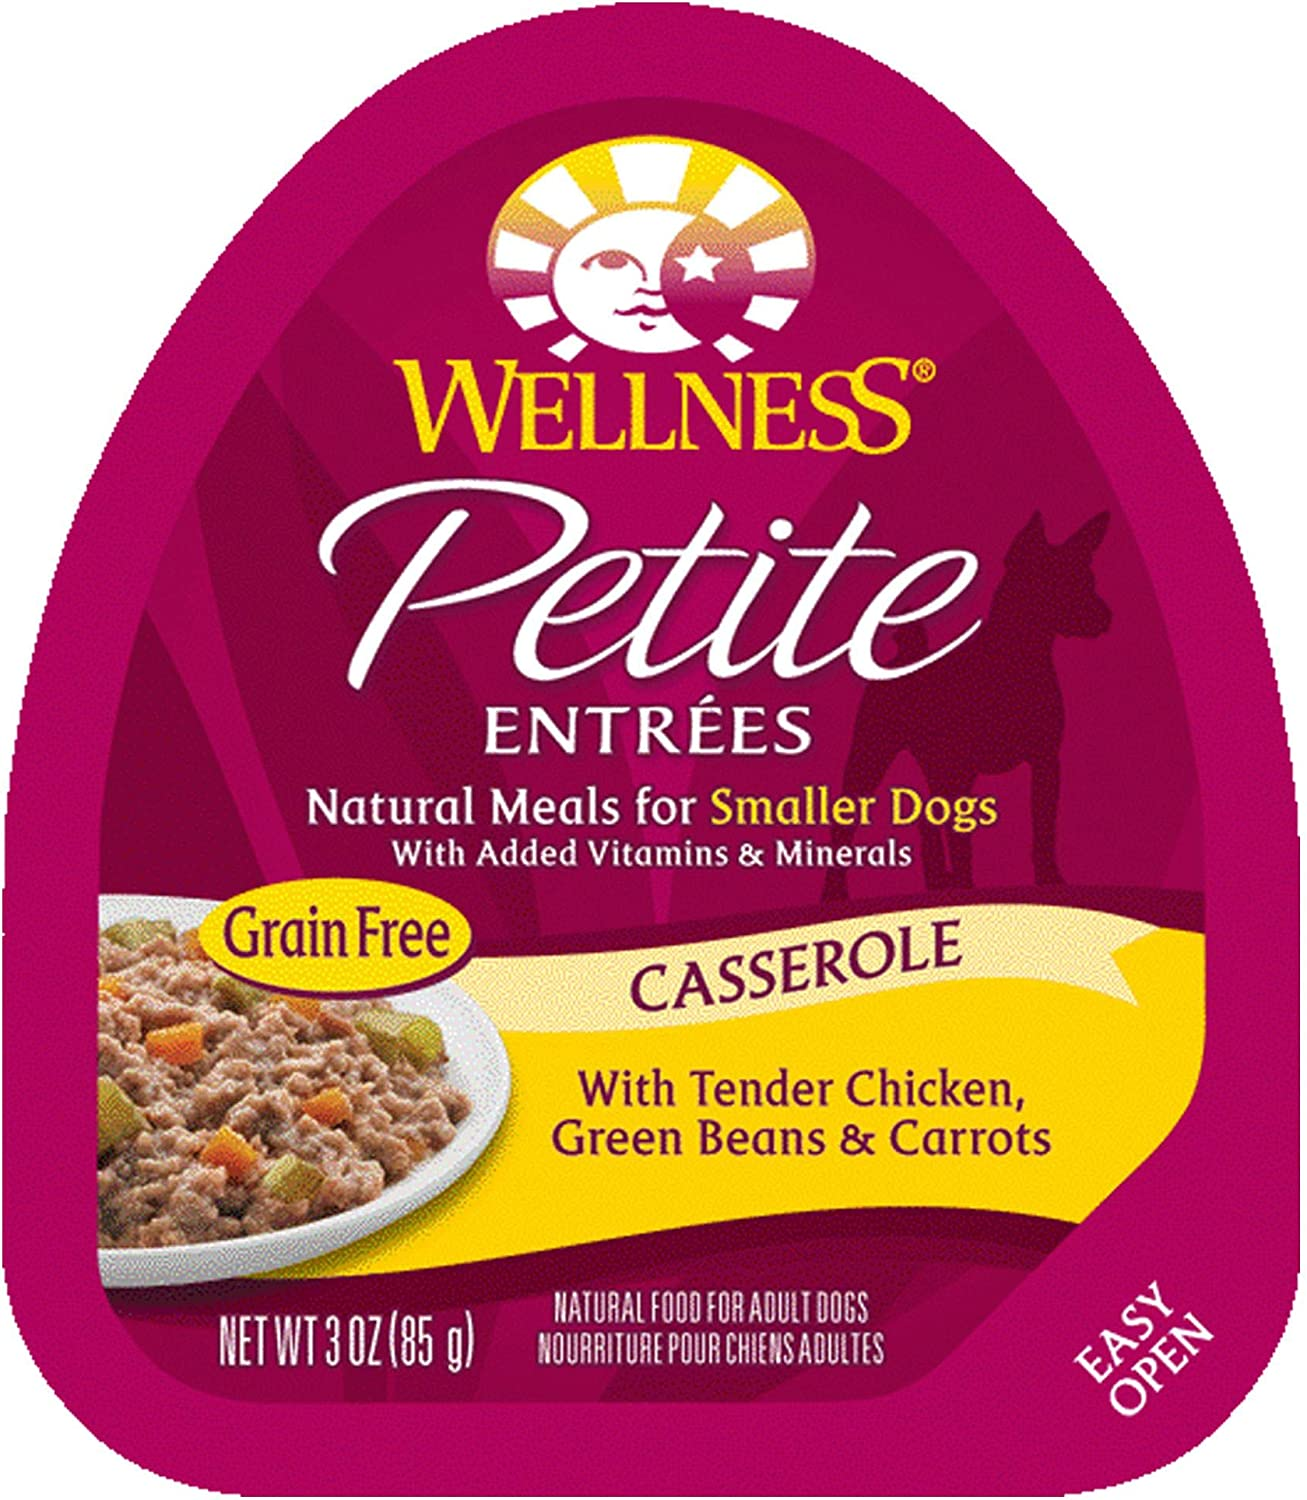 New sales Wellness Petite Entrees Max 66% OFF Casserole Natural Grain Chicken Gr Free